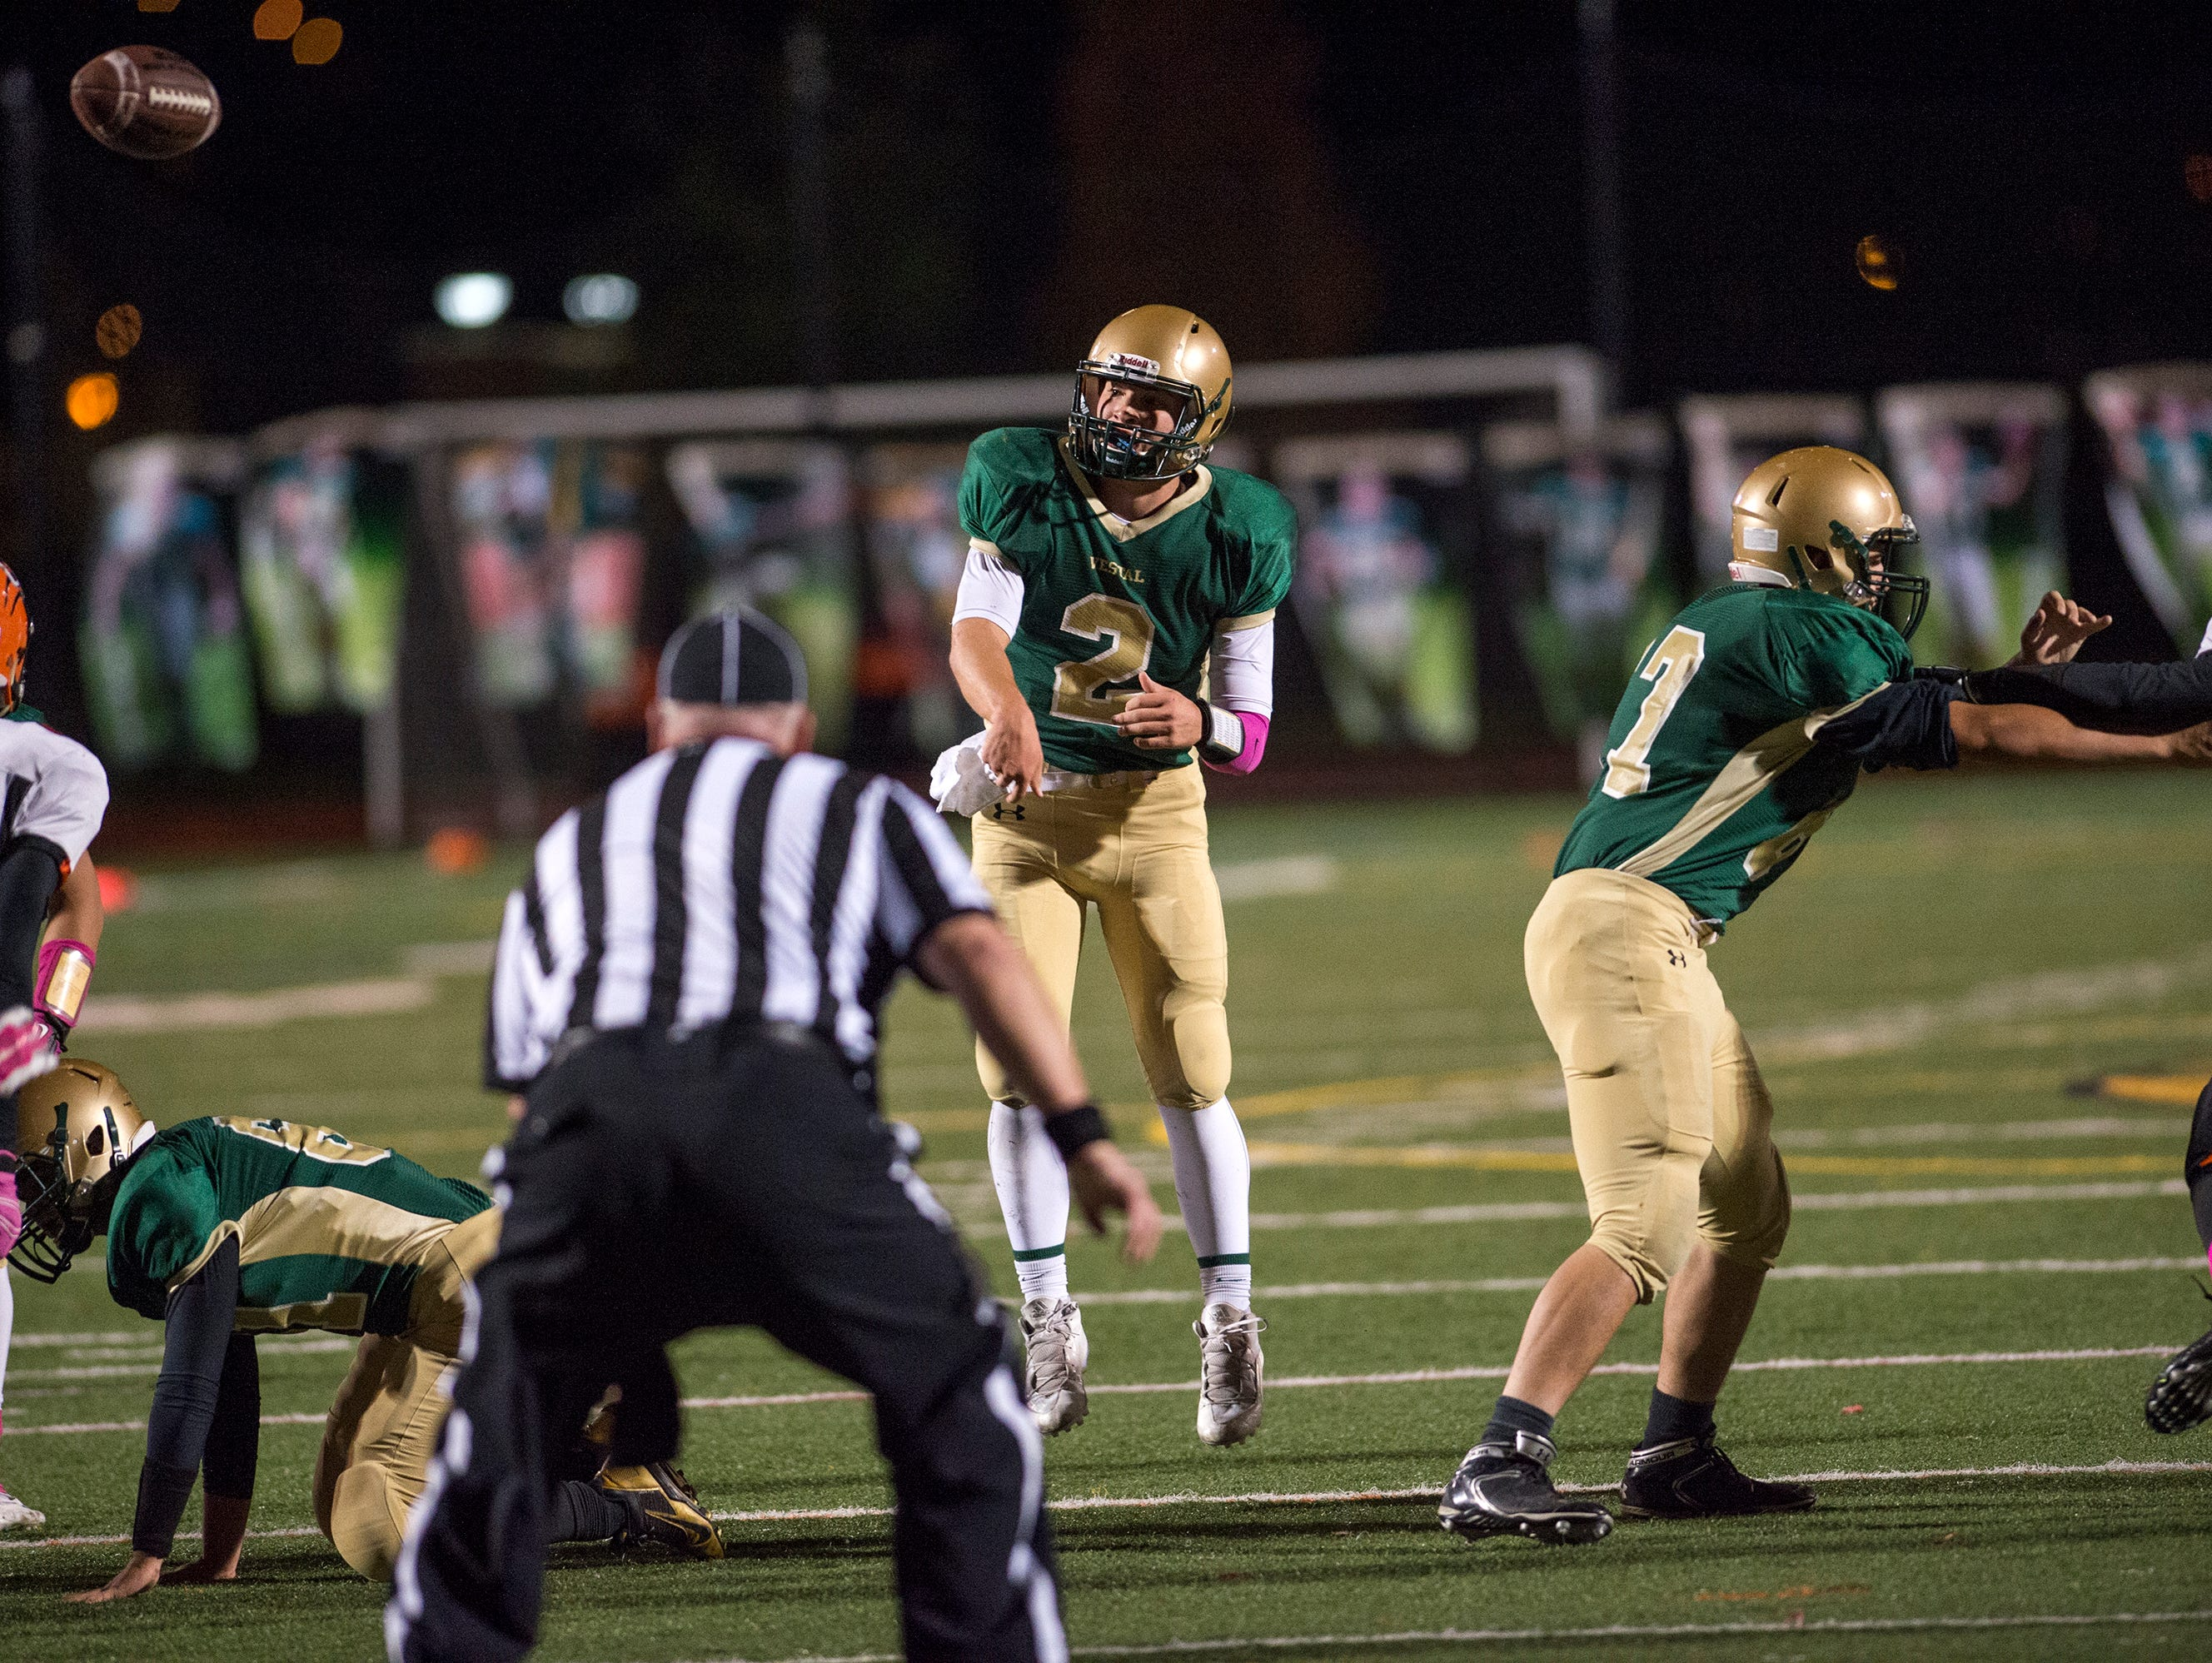 Vestal quarterback TJ Wegmann throws a pass during the second quarter of the Golden Bears 28-6 win over Union-Endicott at home on Friday, Oct. 9, 2015.